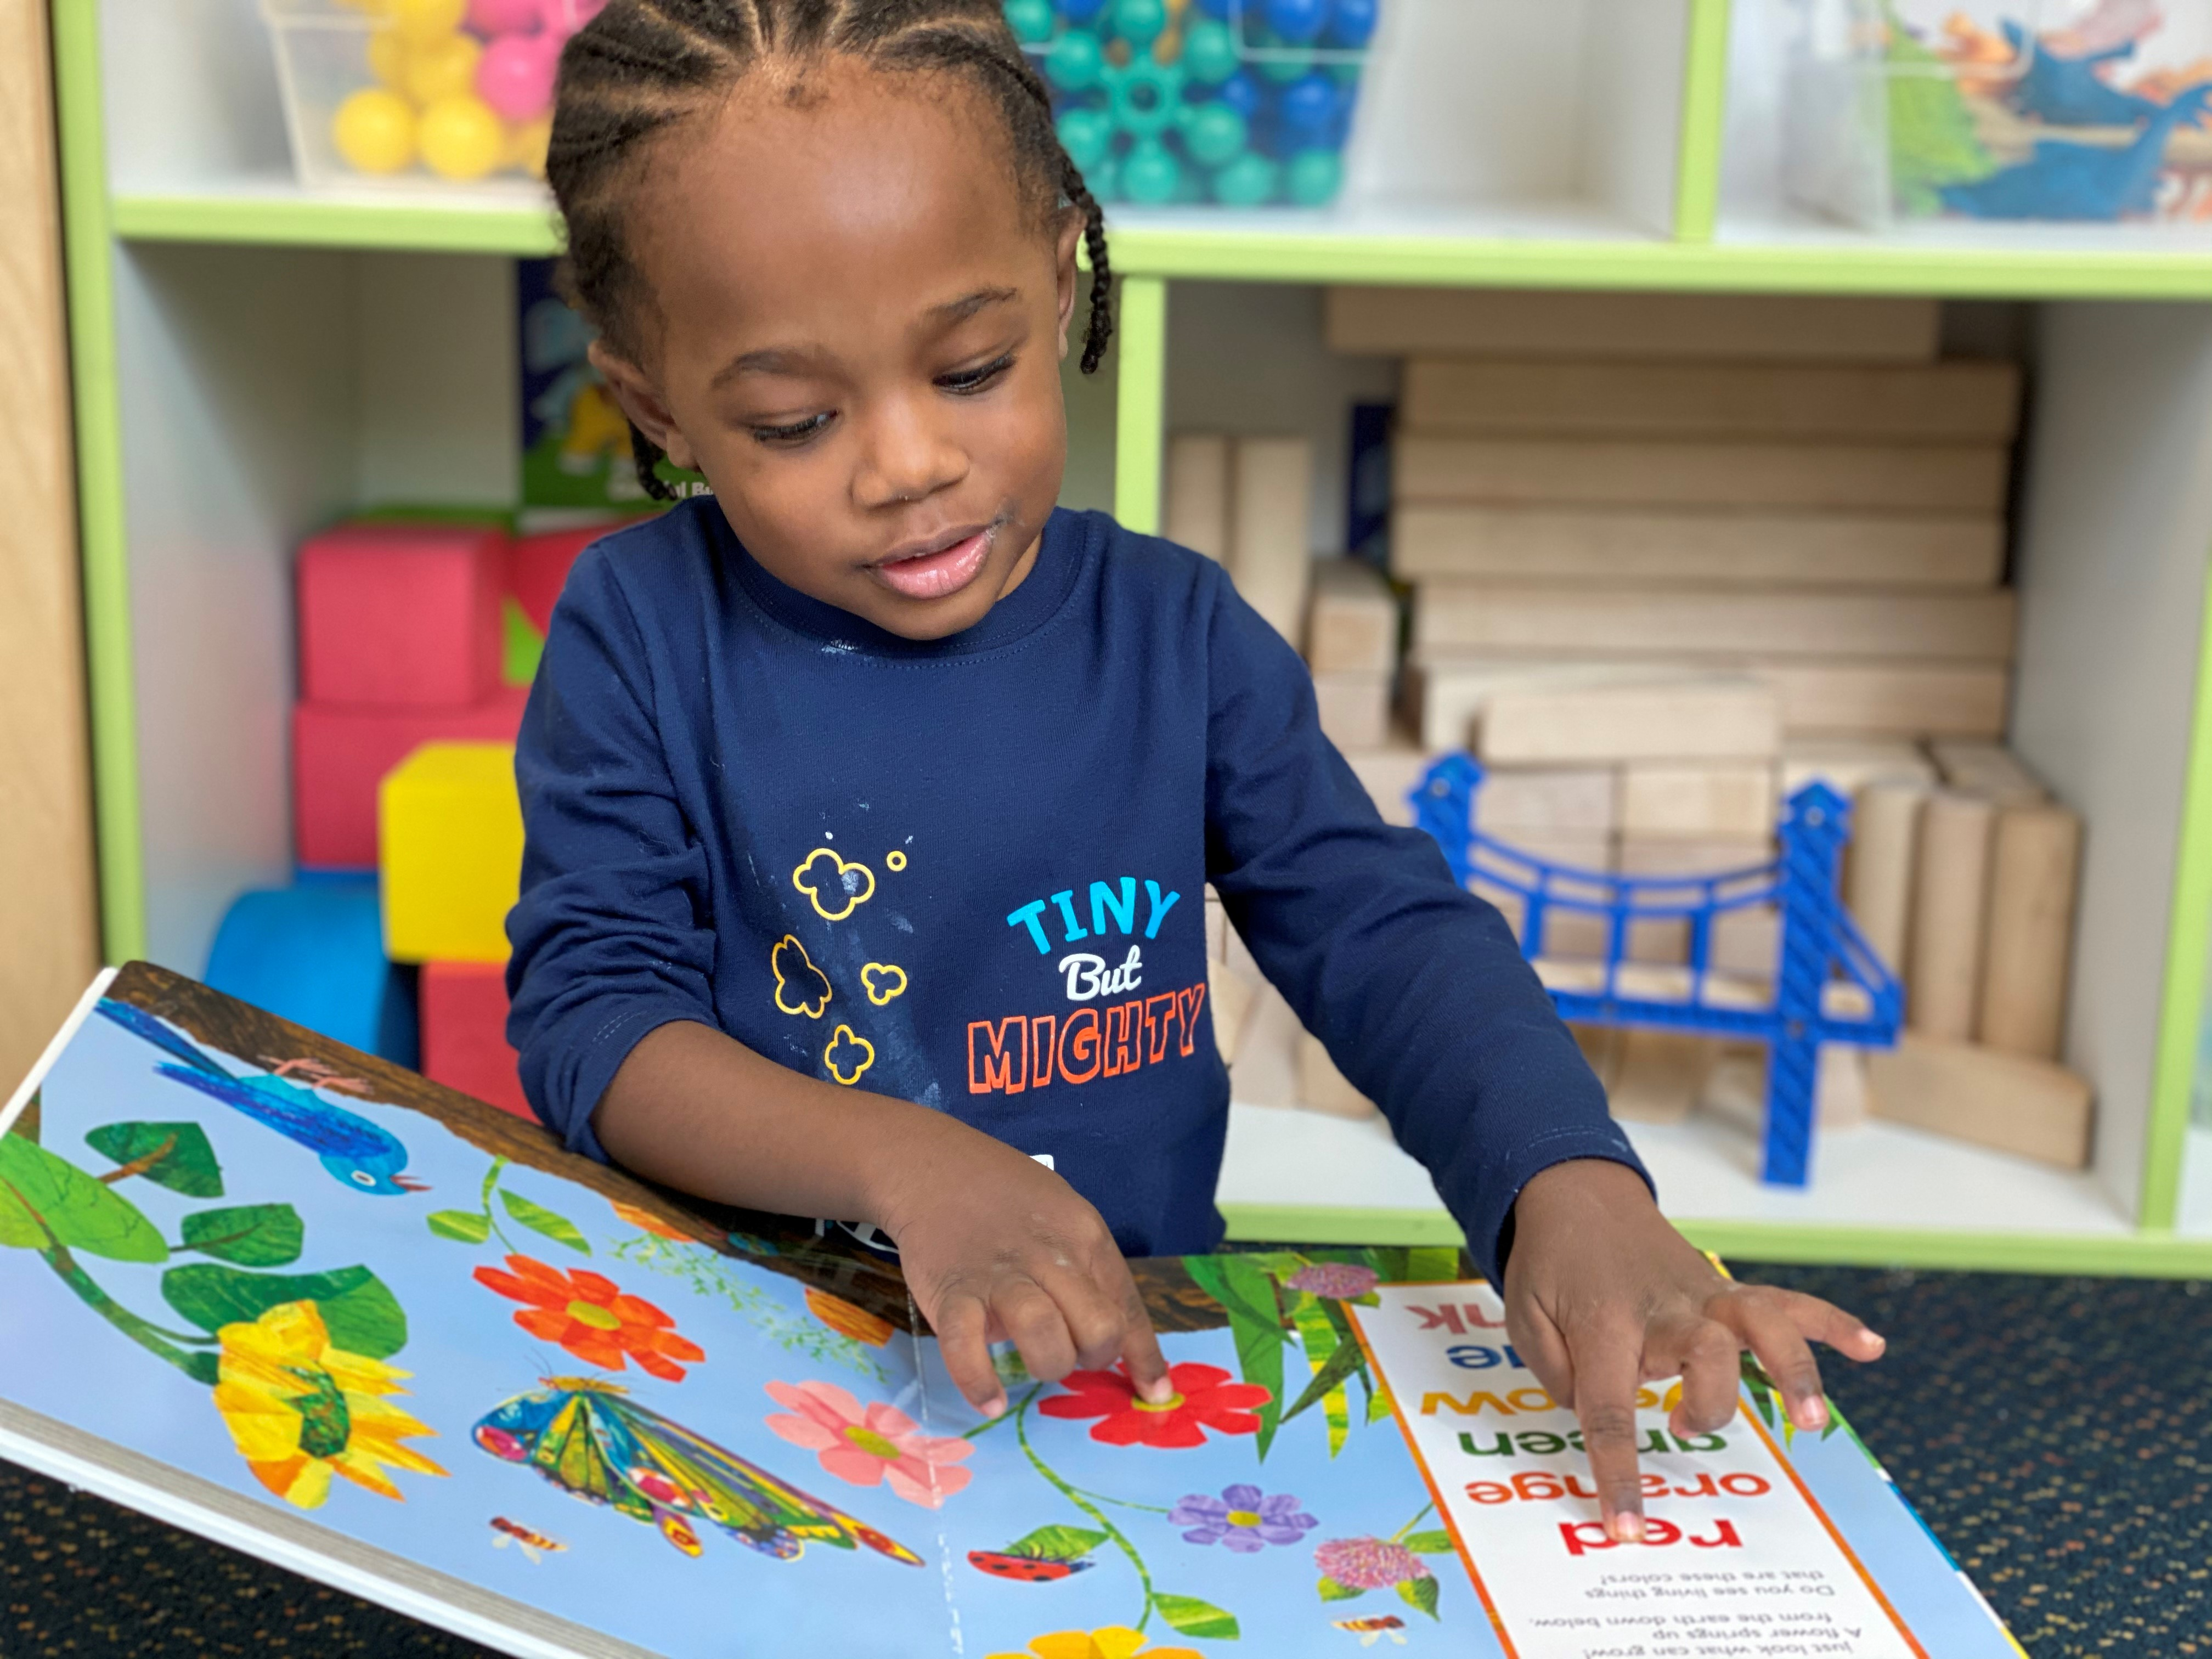 Our proprietary L.E.A.P (Learning Experience Academic Program) curriculum encourages children to learn in their favorite way: by exploring and doing. Our little learners achieve success independently while developing intellectually, socially and cogn